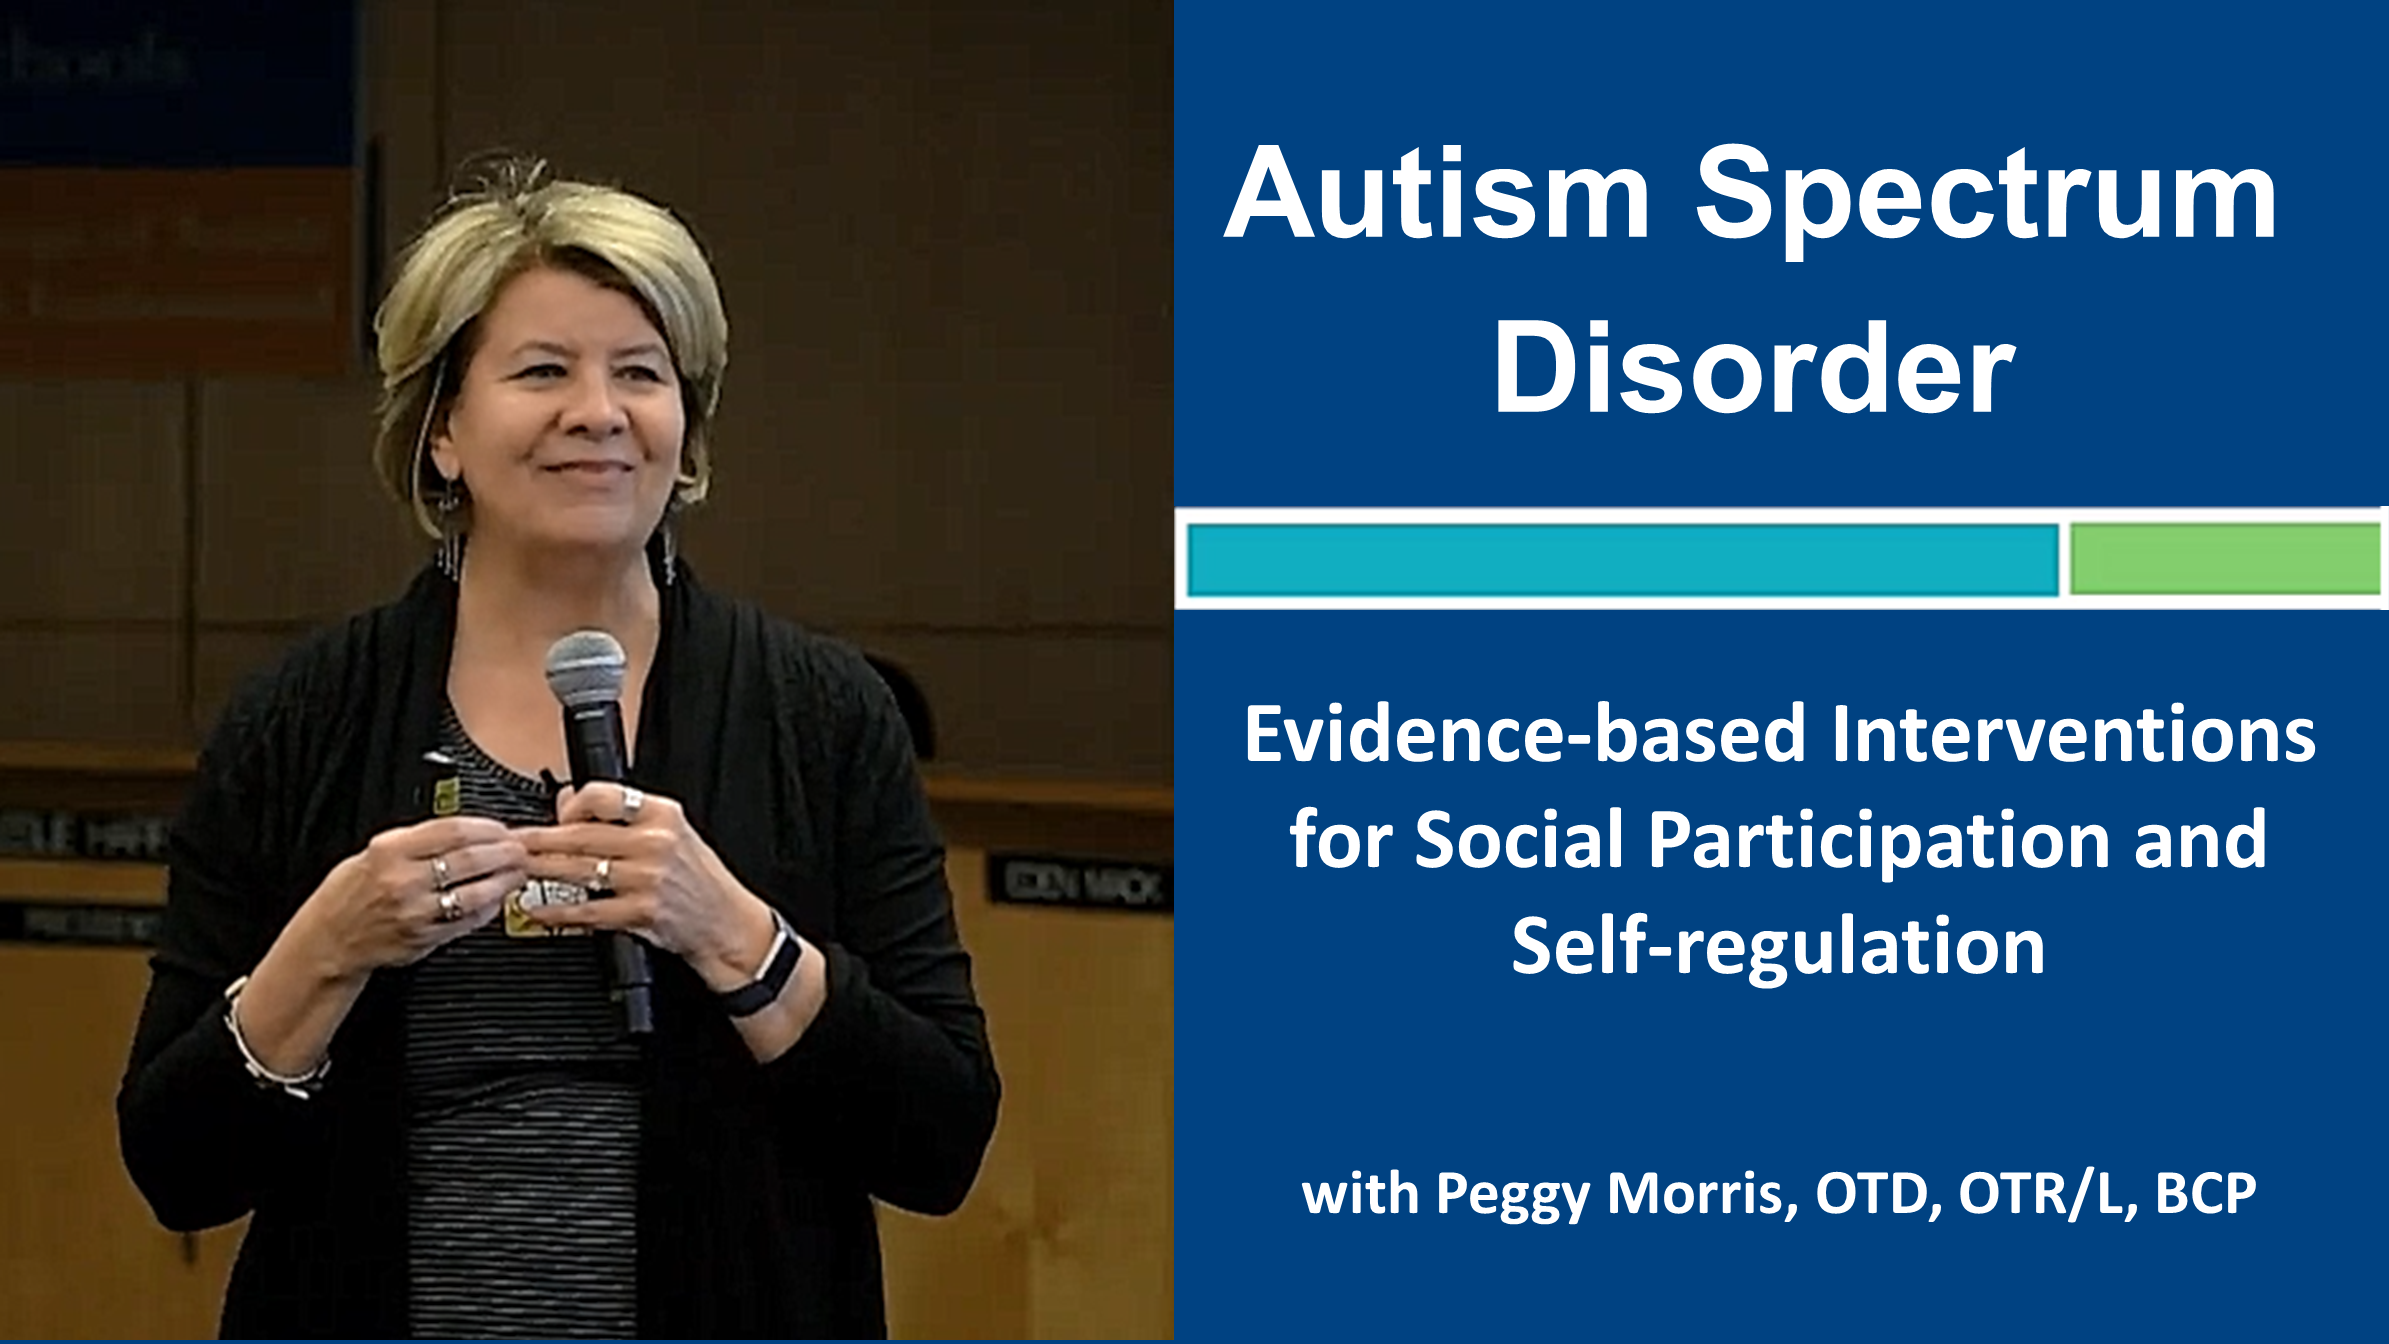 Webinar 6: Autism Spectrum Disorder: Evidence-based Interventions for Social Participation and Self-regulation